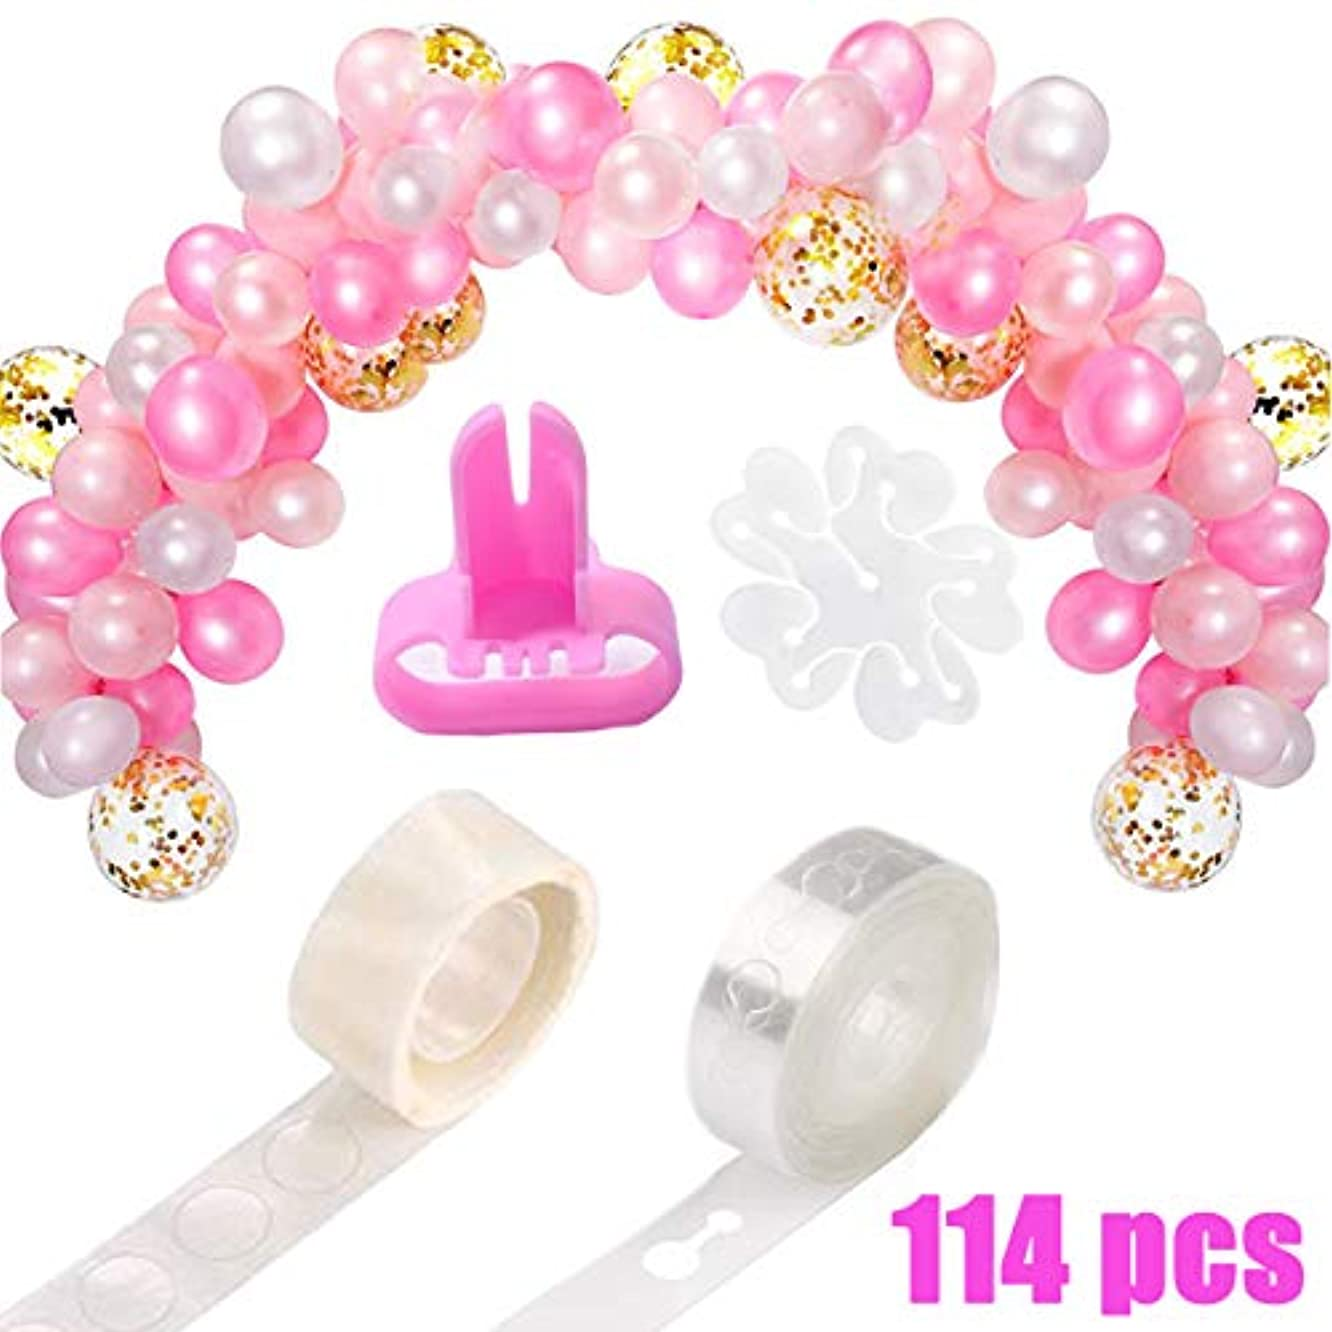 UPTO 114 Pieces Balloon Arch Garland Balloon Garland Kit for Baby Shower Bridal Girls Birthday Party Decorations Gold Pink White Color (Gold Pink White Color)